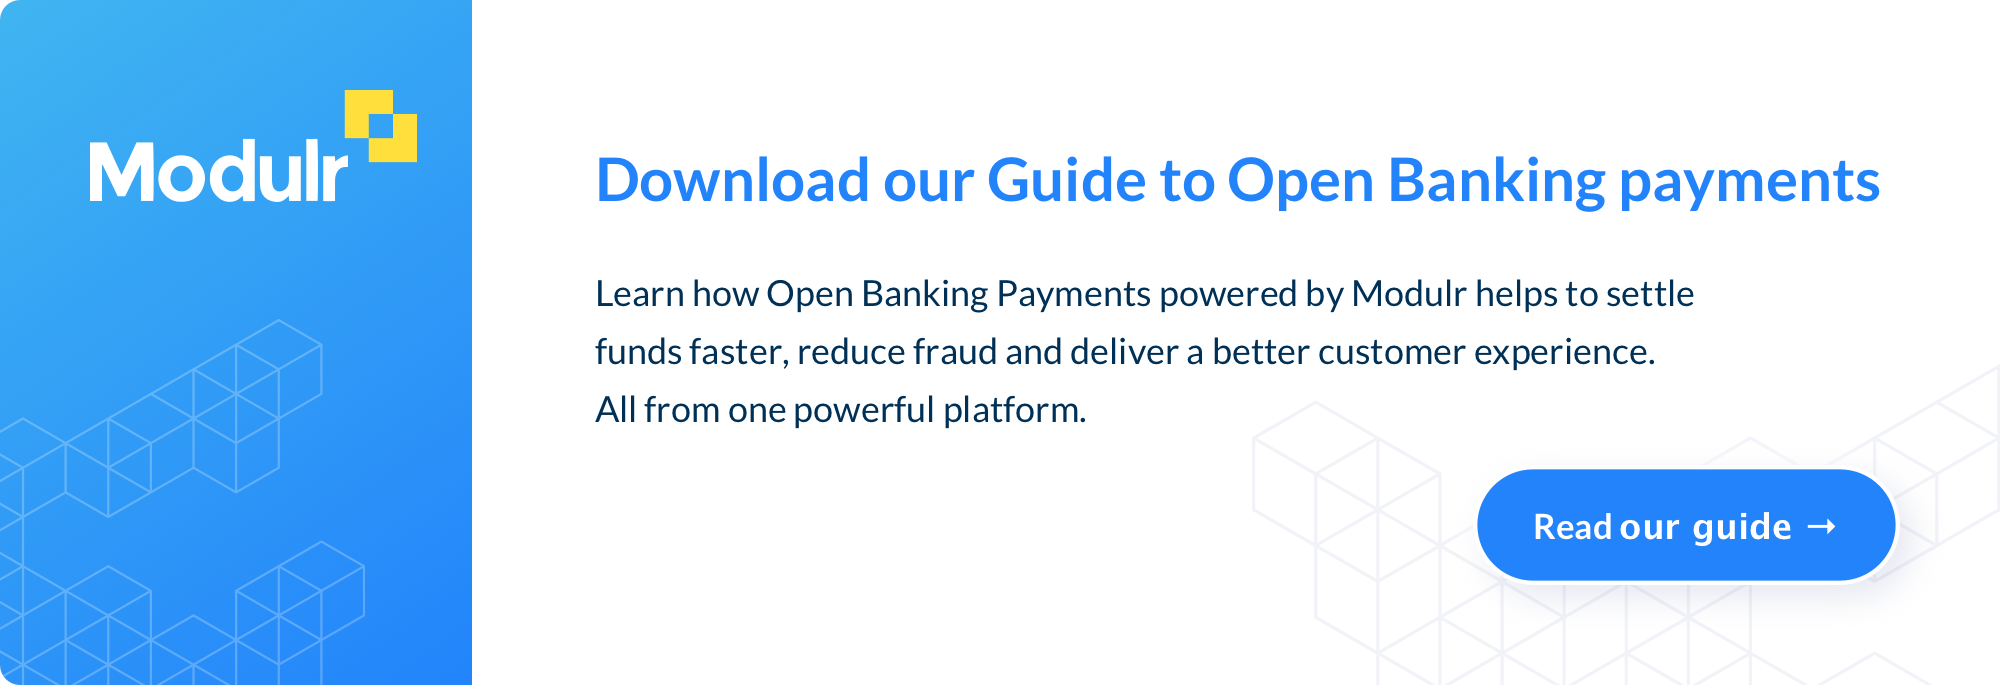 Payments_Guide_Download-2_CTA_banner